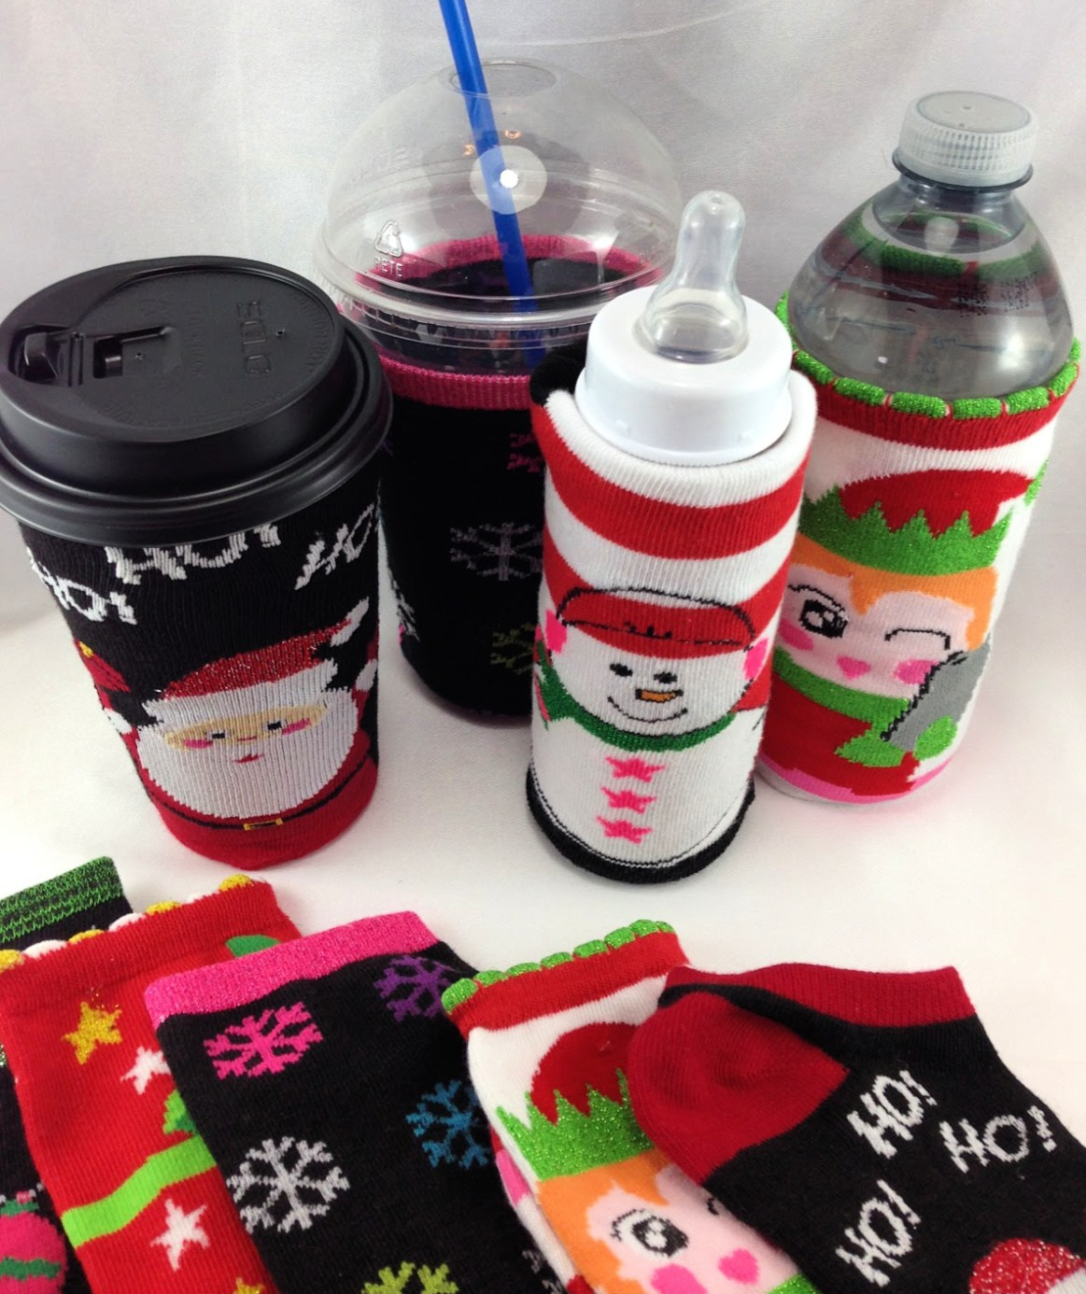 DIY Christmas Socks and Drinks DIY Christmas Sock Wine Bottle Cozies #water_bottle DIY Christmas Sock Drink Cozies #christmas #craft #christmas_sock #cozie #drink_cozie #cozzie #wine_cozie #coffee_cozzie #DIY #repurpose